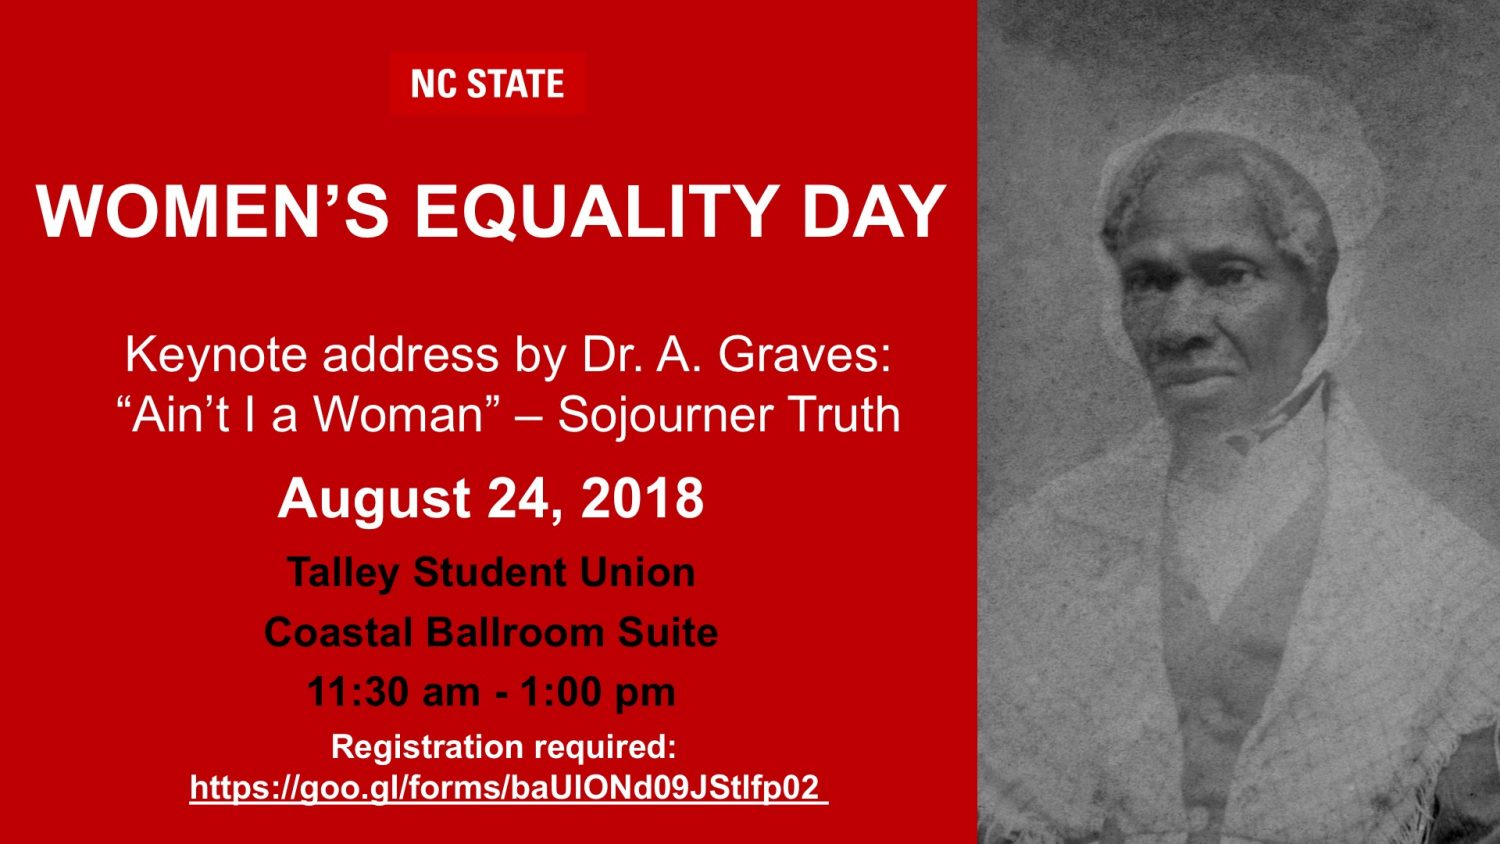 Register for the August 24th Women's Equality Seminar